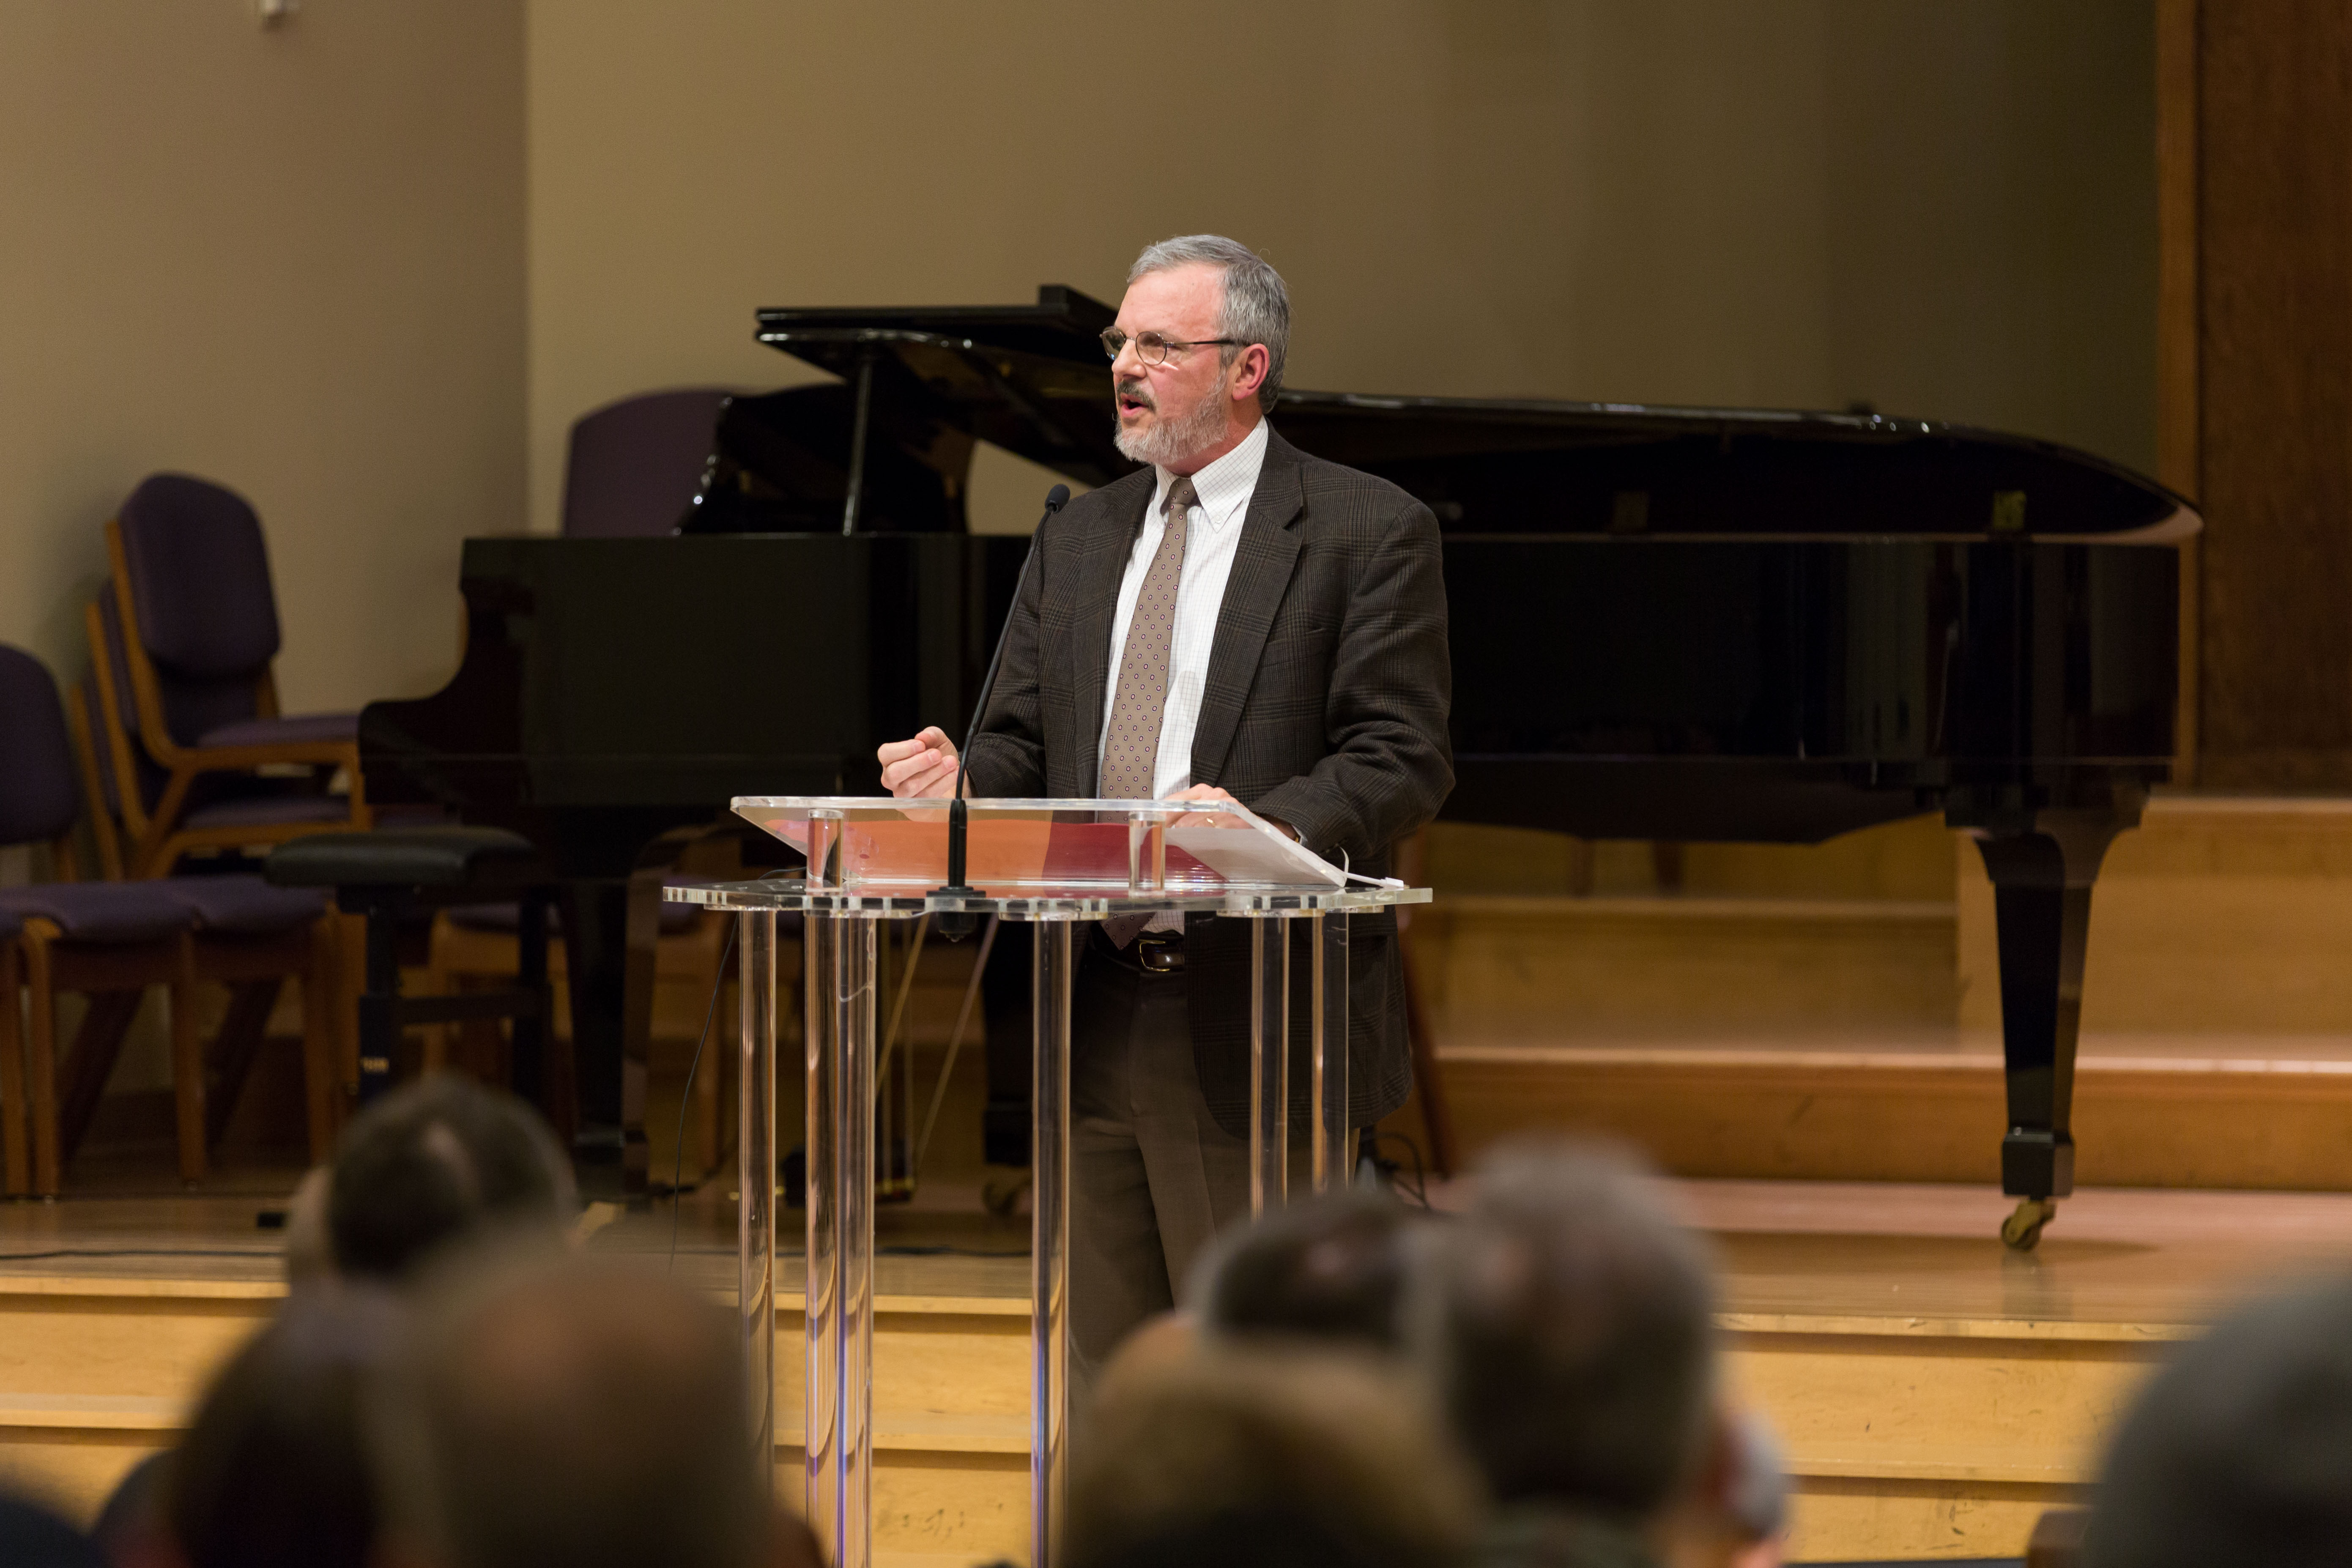 Kevin J. Vanhoozer, research professor of systematic theology at Trinity Evangelical Theological Seminary in Deerfield, Illinois, was the symposium's keynote speaker, photo credit: Shiekainah Decano